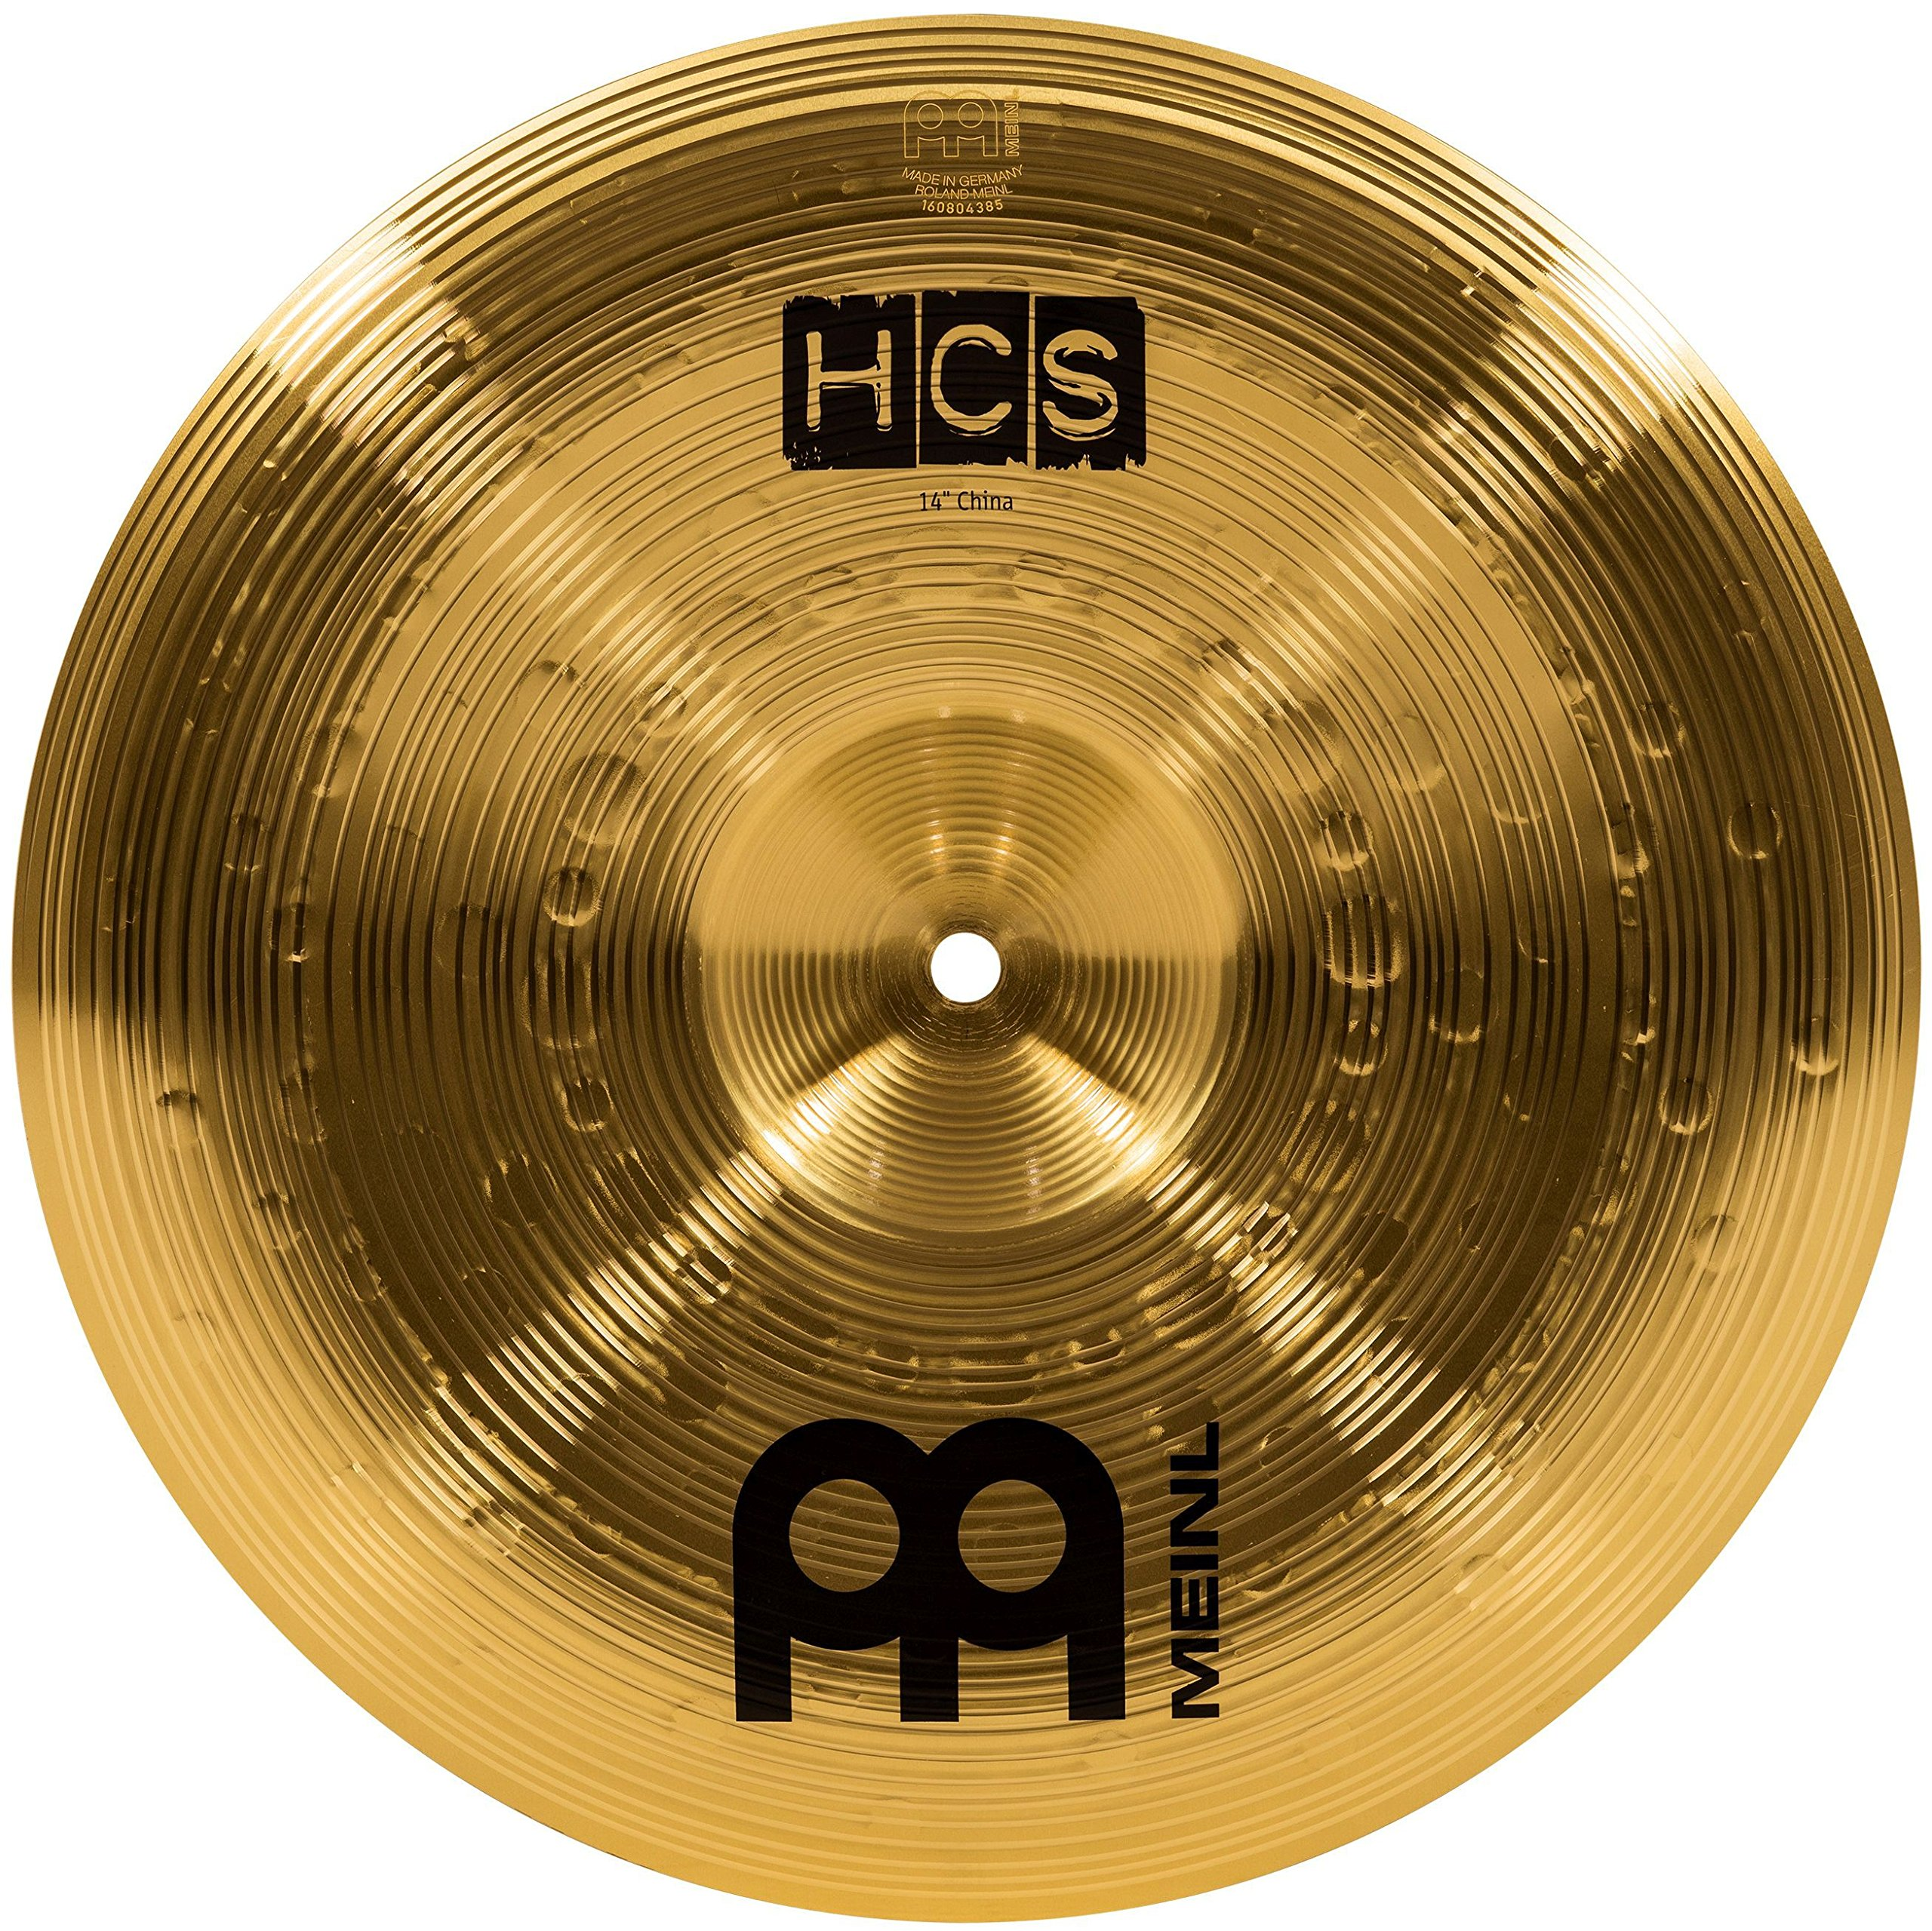 Meinl 14'' China Cymbal - HCS Traditional Finish Brass for Drum Set, Made In Germany, 2-YEAR WARRANTY (HCS14CH) by Meinl Cymbals